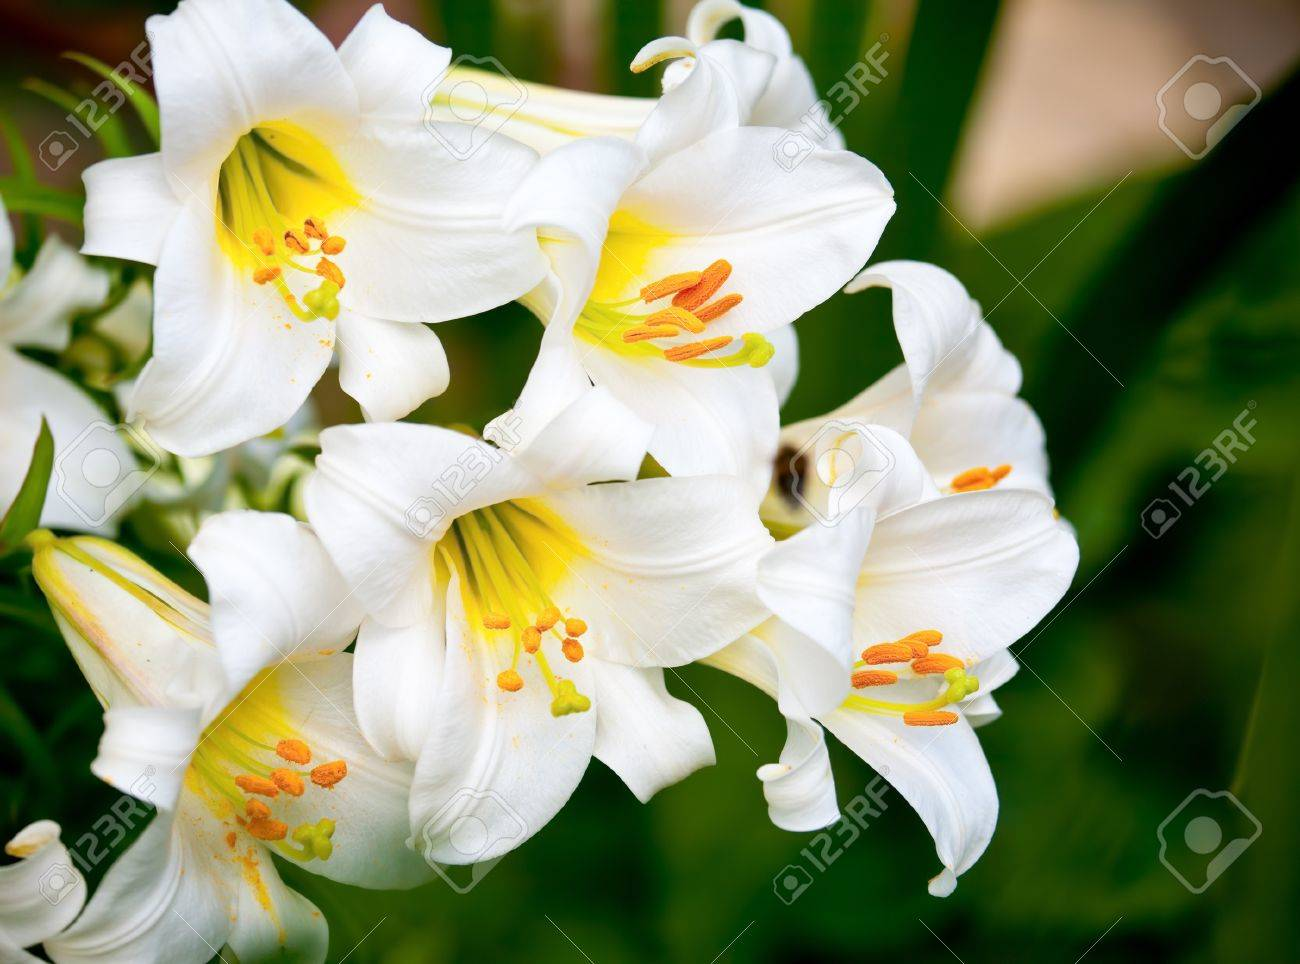 White easter lily flowers in a garden shallow dof stock photo stock photo white easter lily flowers in a garden shallow dof izmirmasajfo